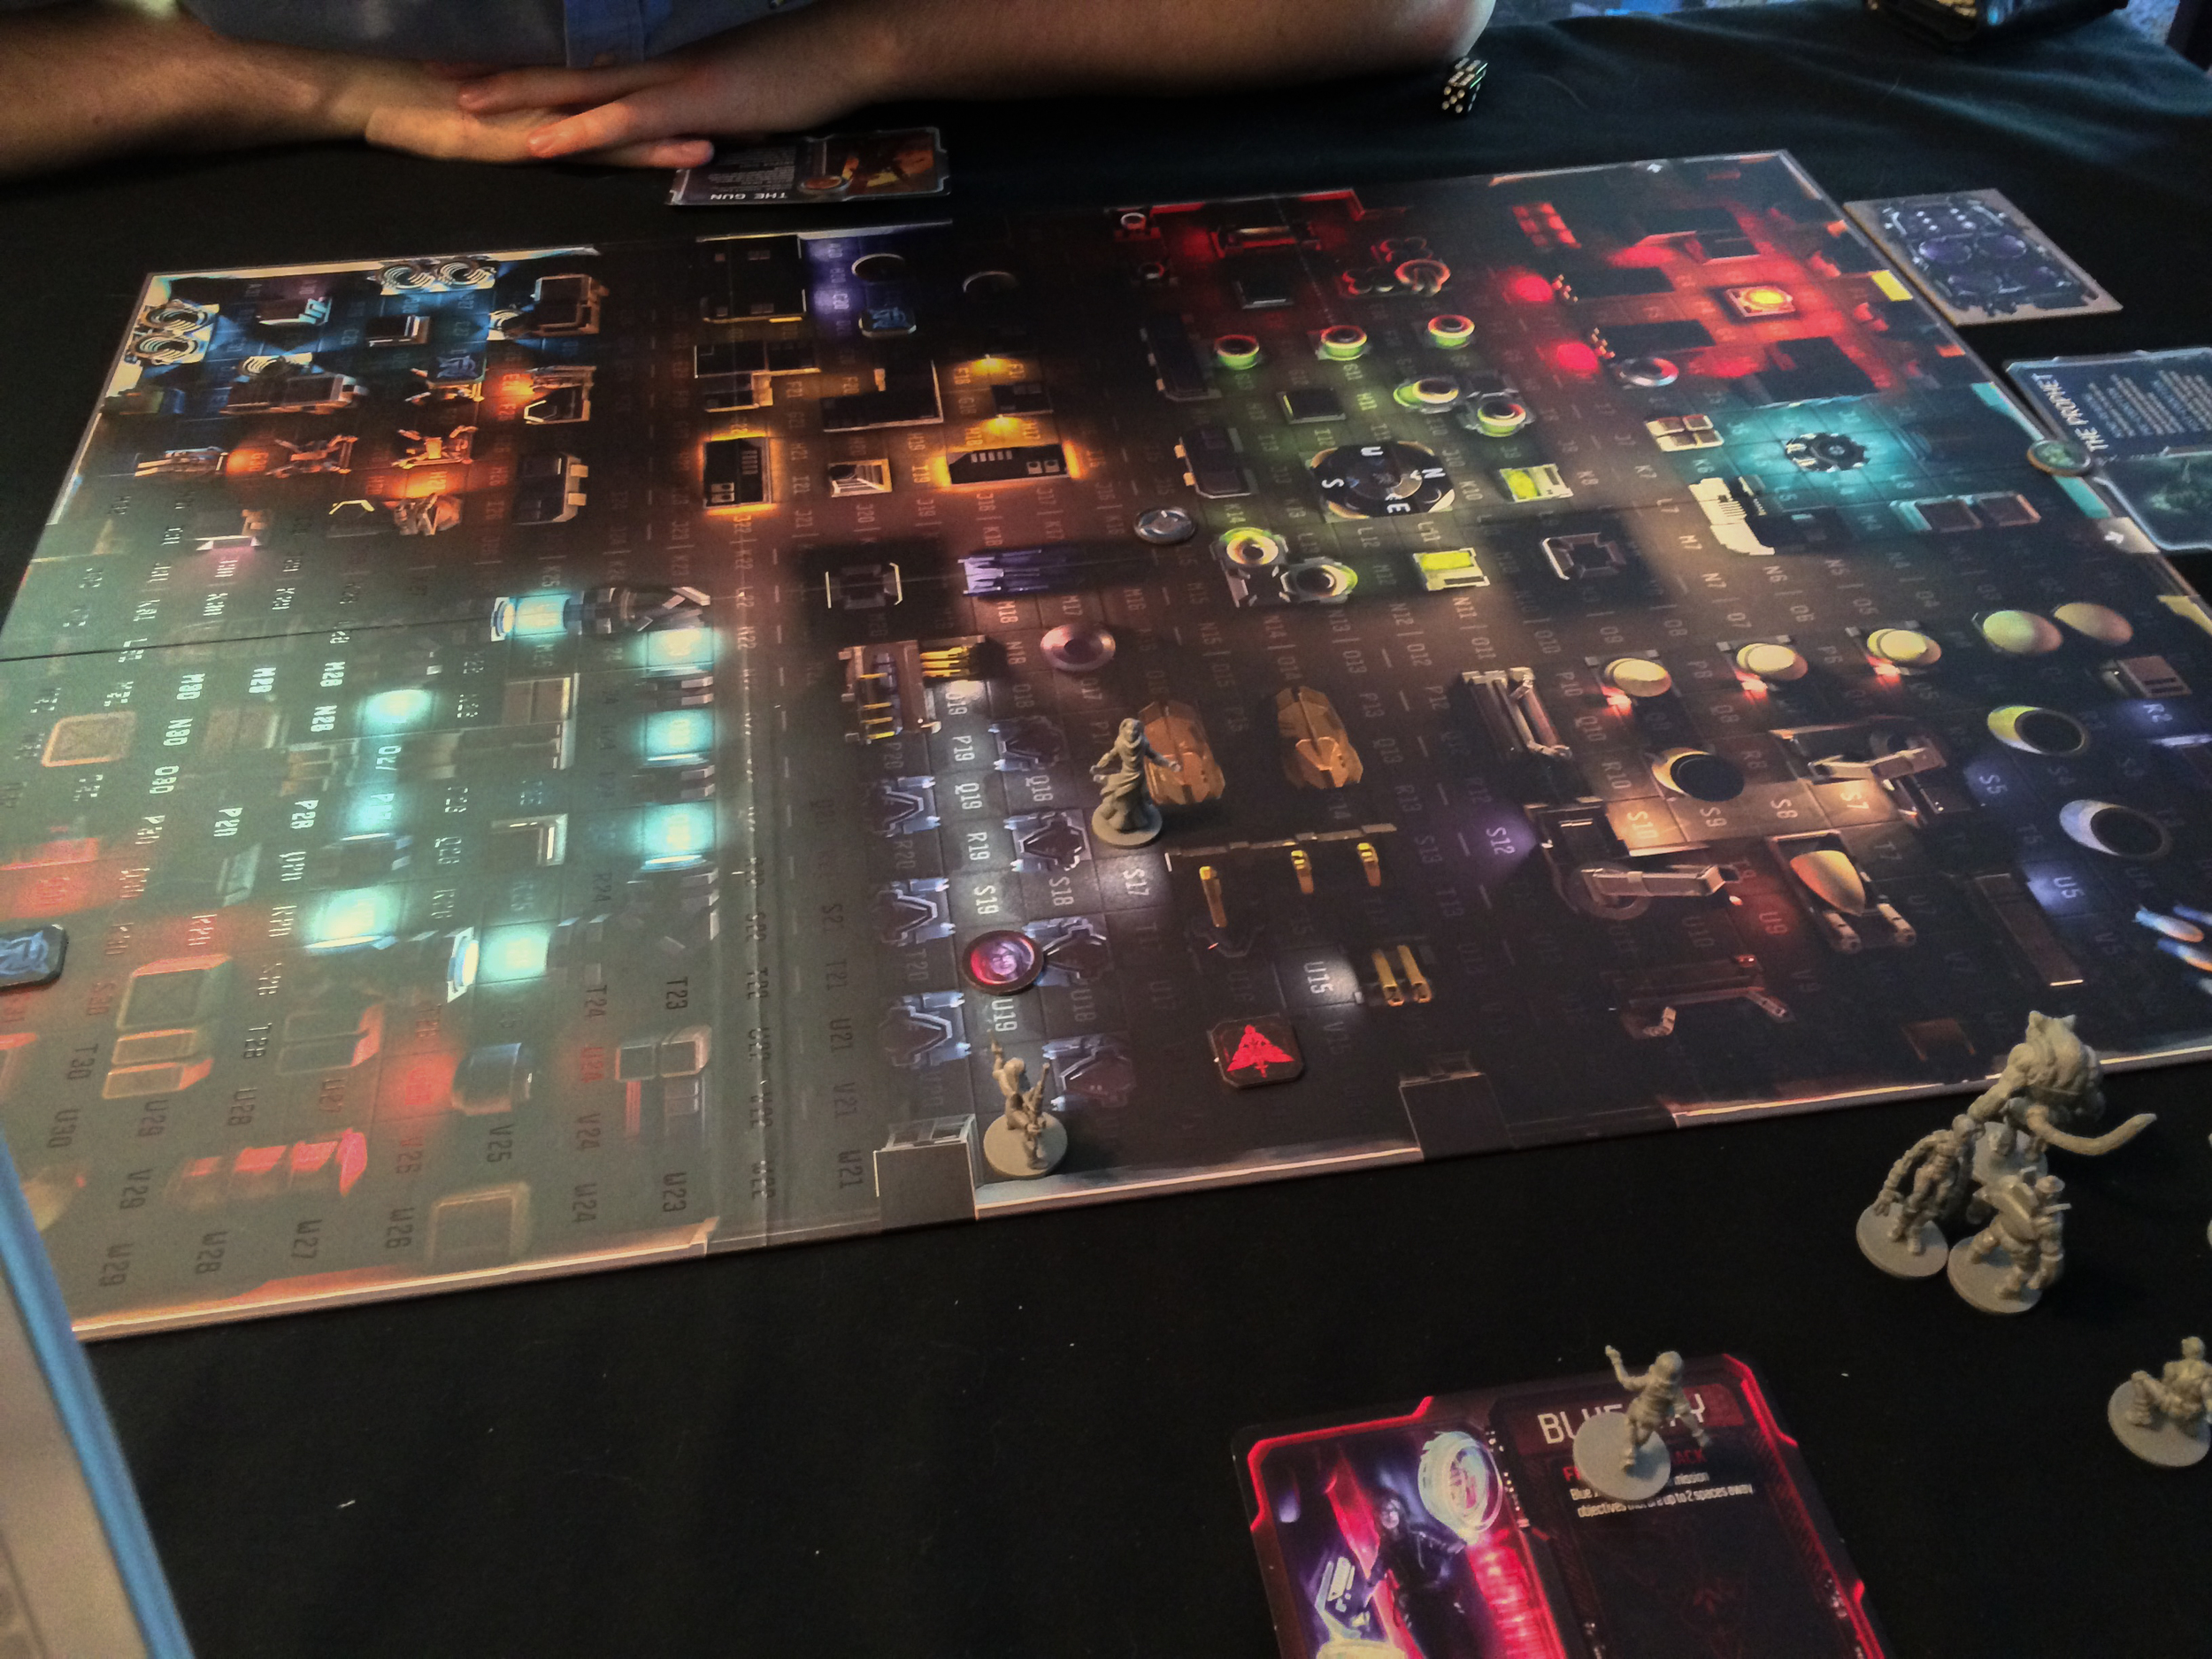 You can't see my agent, but I'm racing towards the exit at the top of the Specter Ops board.